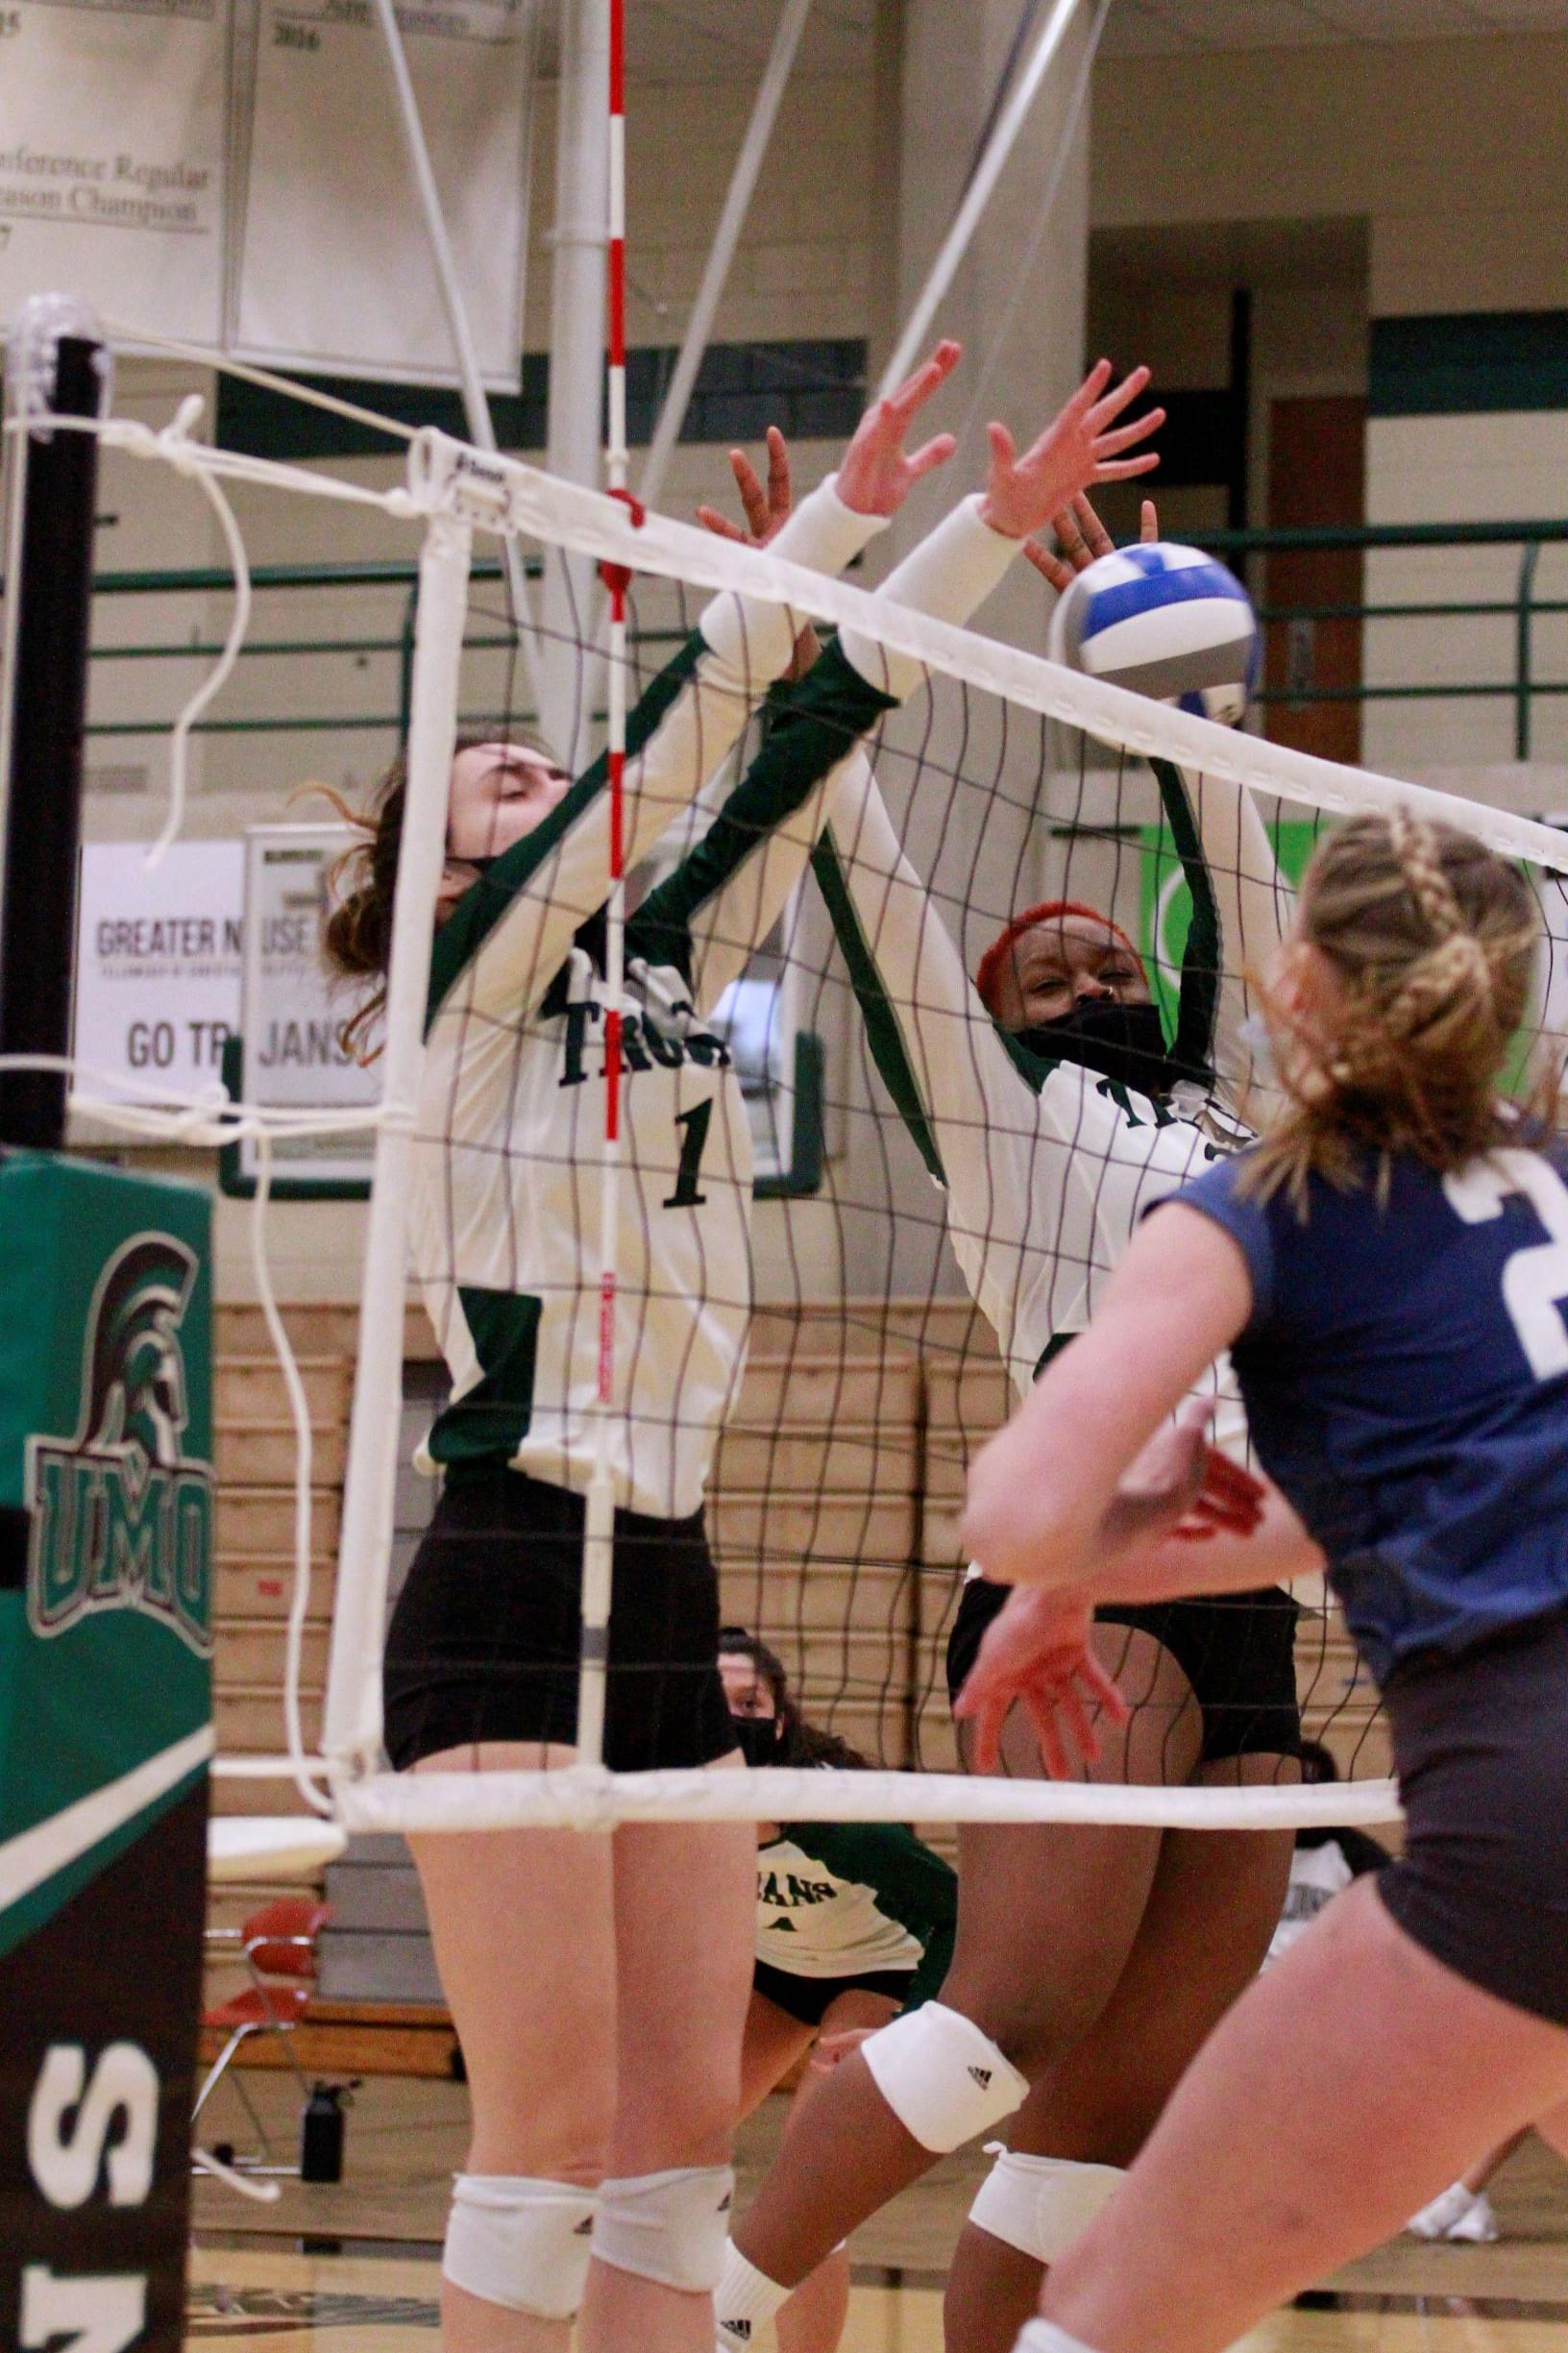 Women's Volleyball: King University At UMO (PHOTO GALLERY)